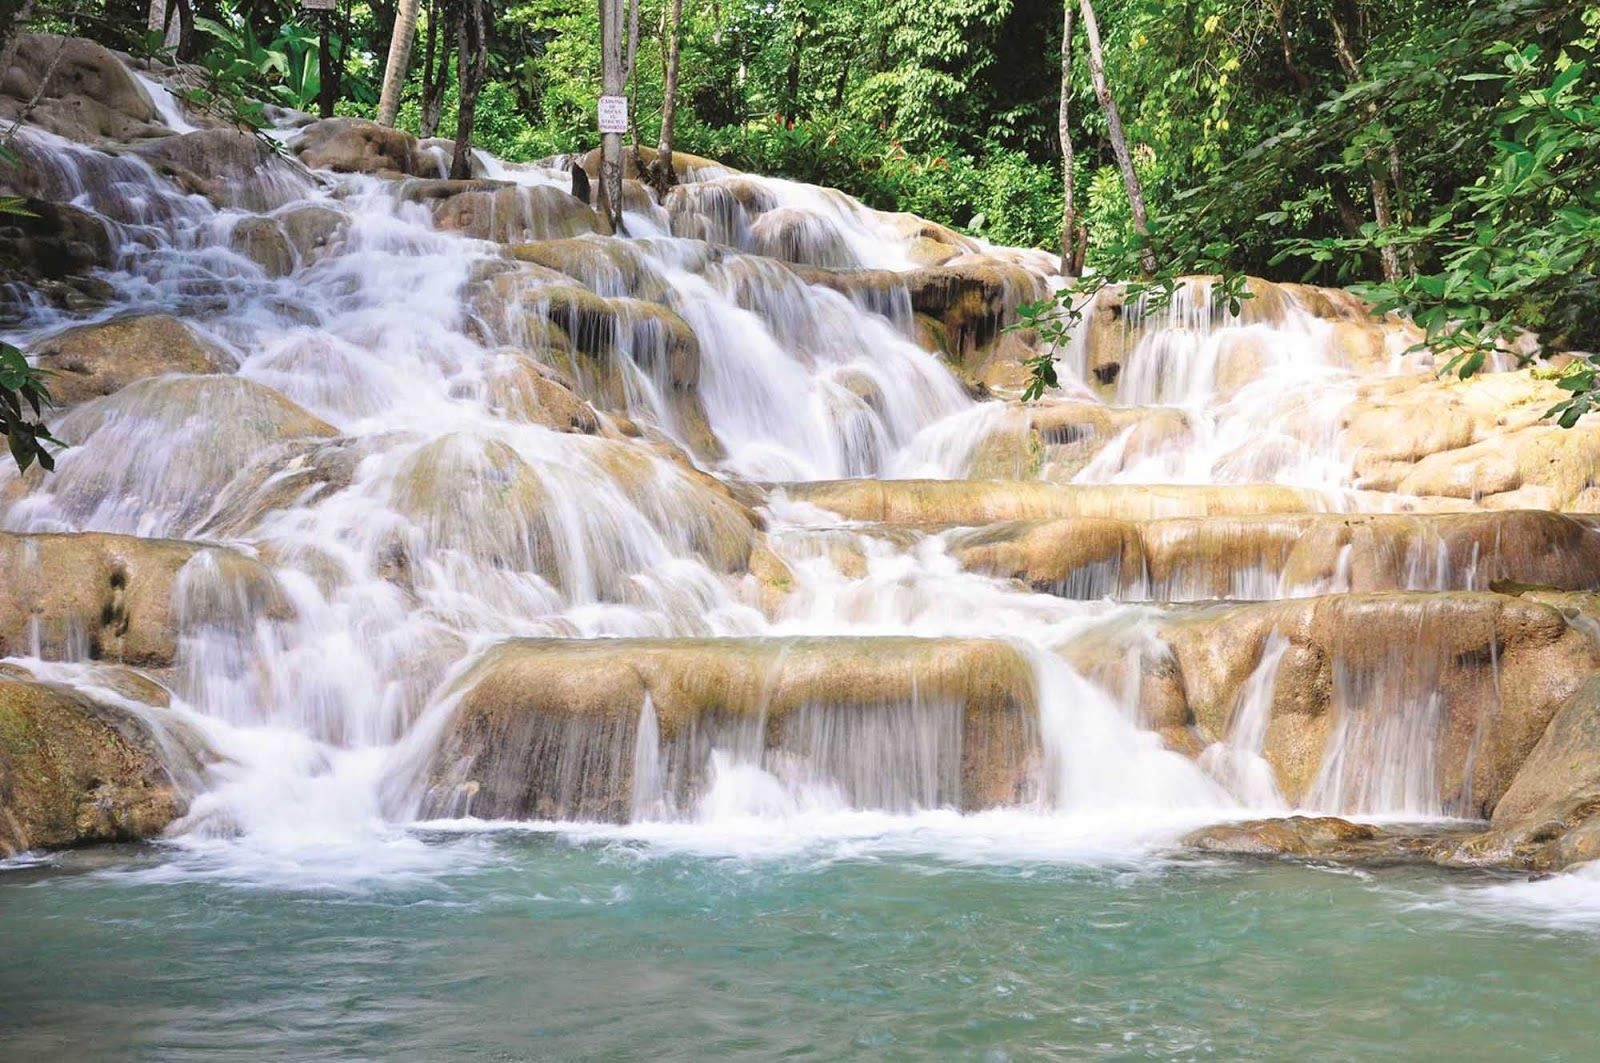 Ochos Rios port and travel guide and photo tour that shows you what to see and do when you take a cruise to this port of call.